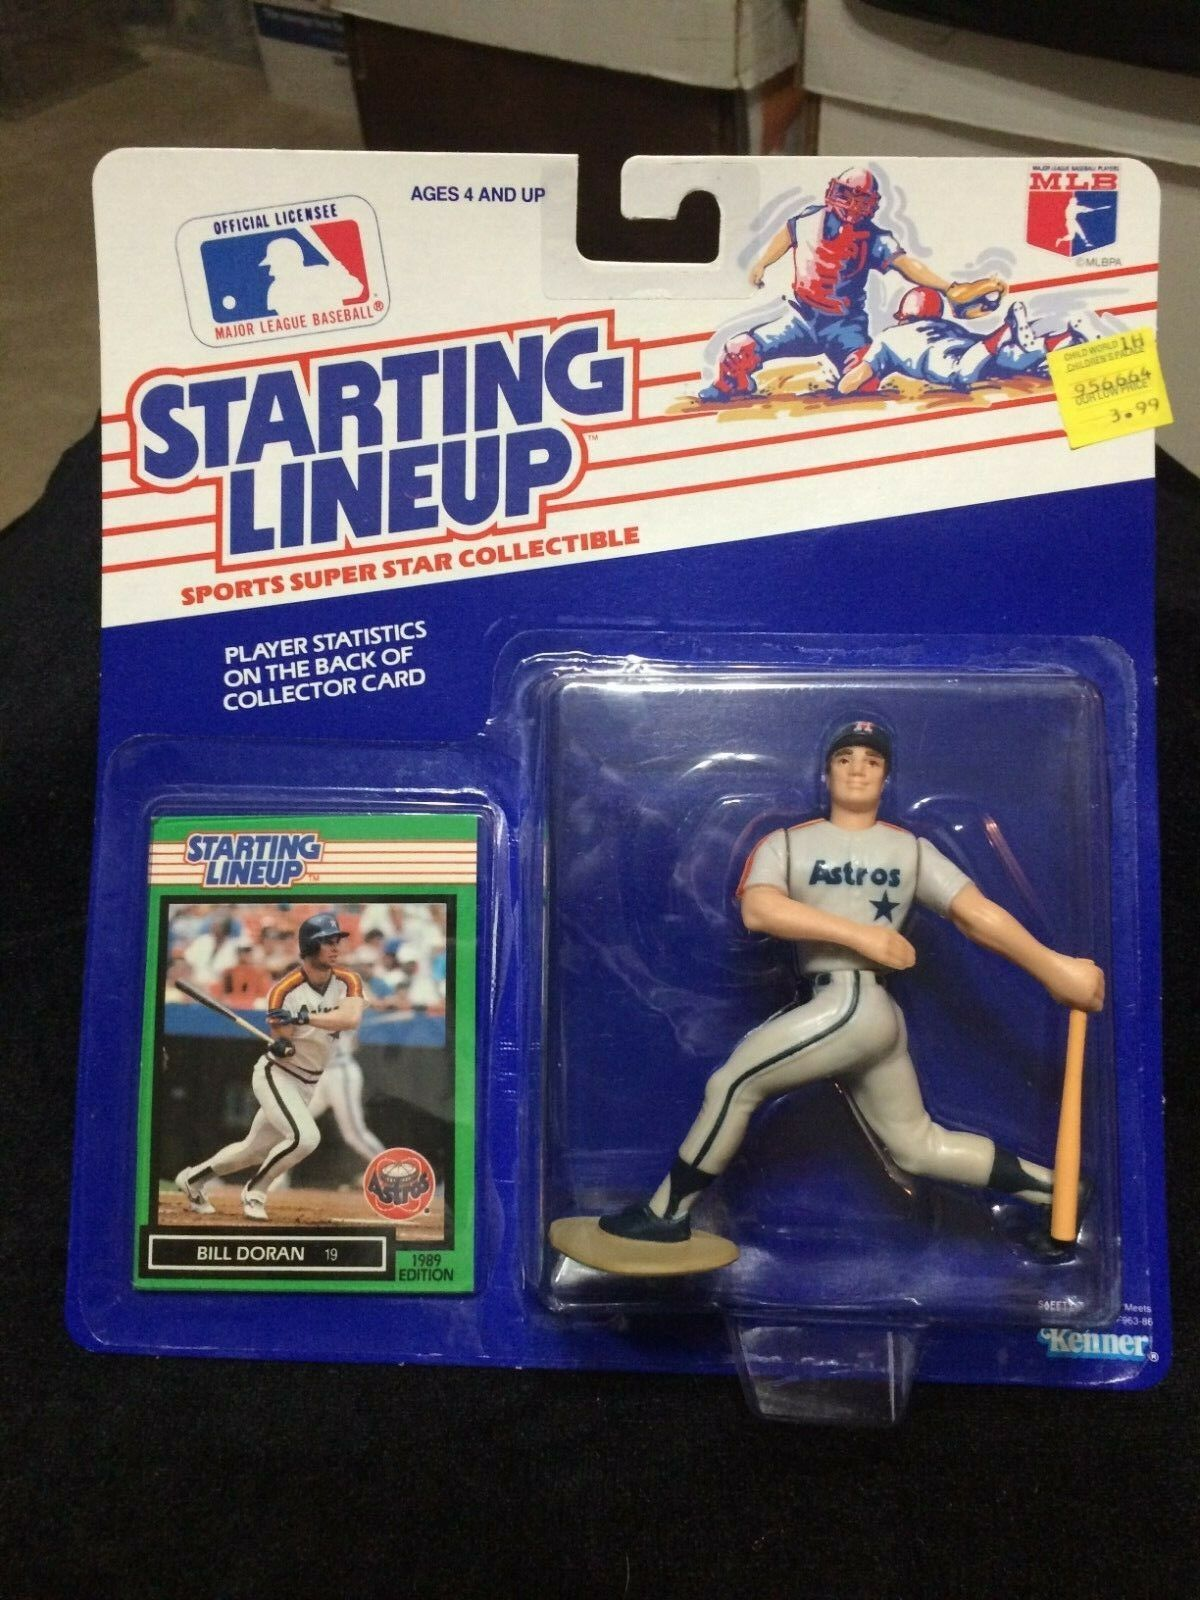 1989 SLU Bill Doran Kenner Starting Lineup Houston Astros Regional Release